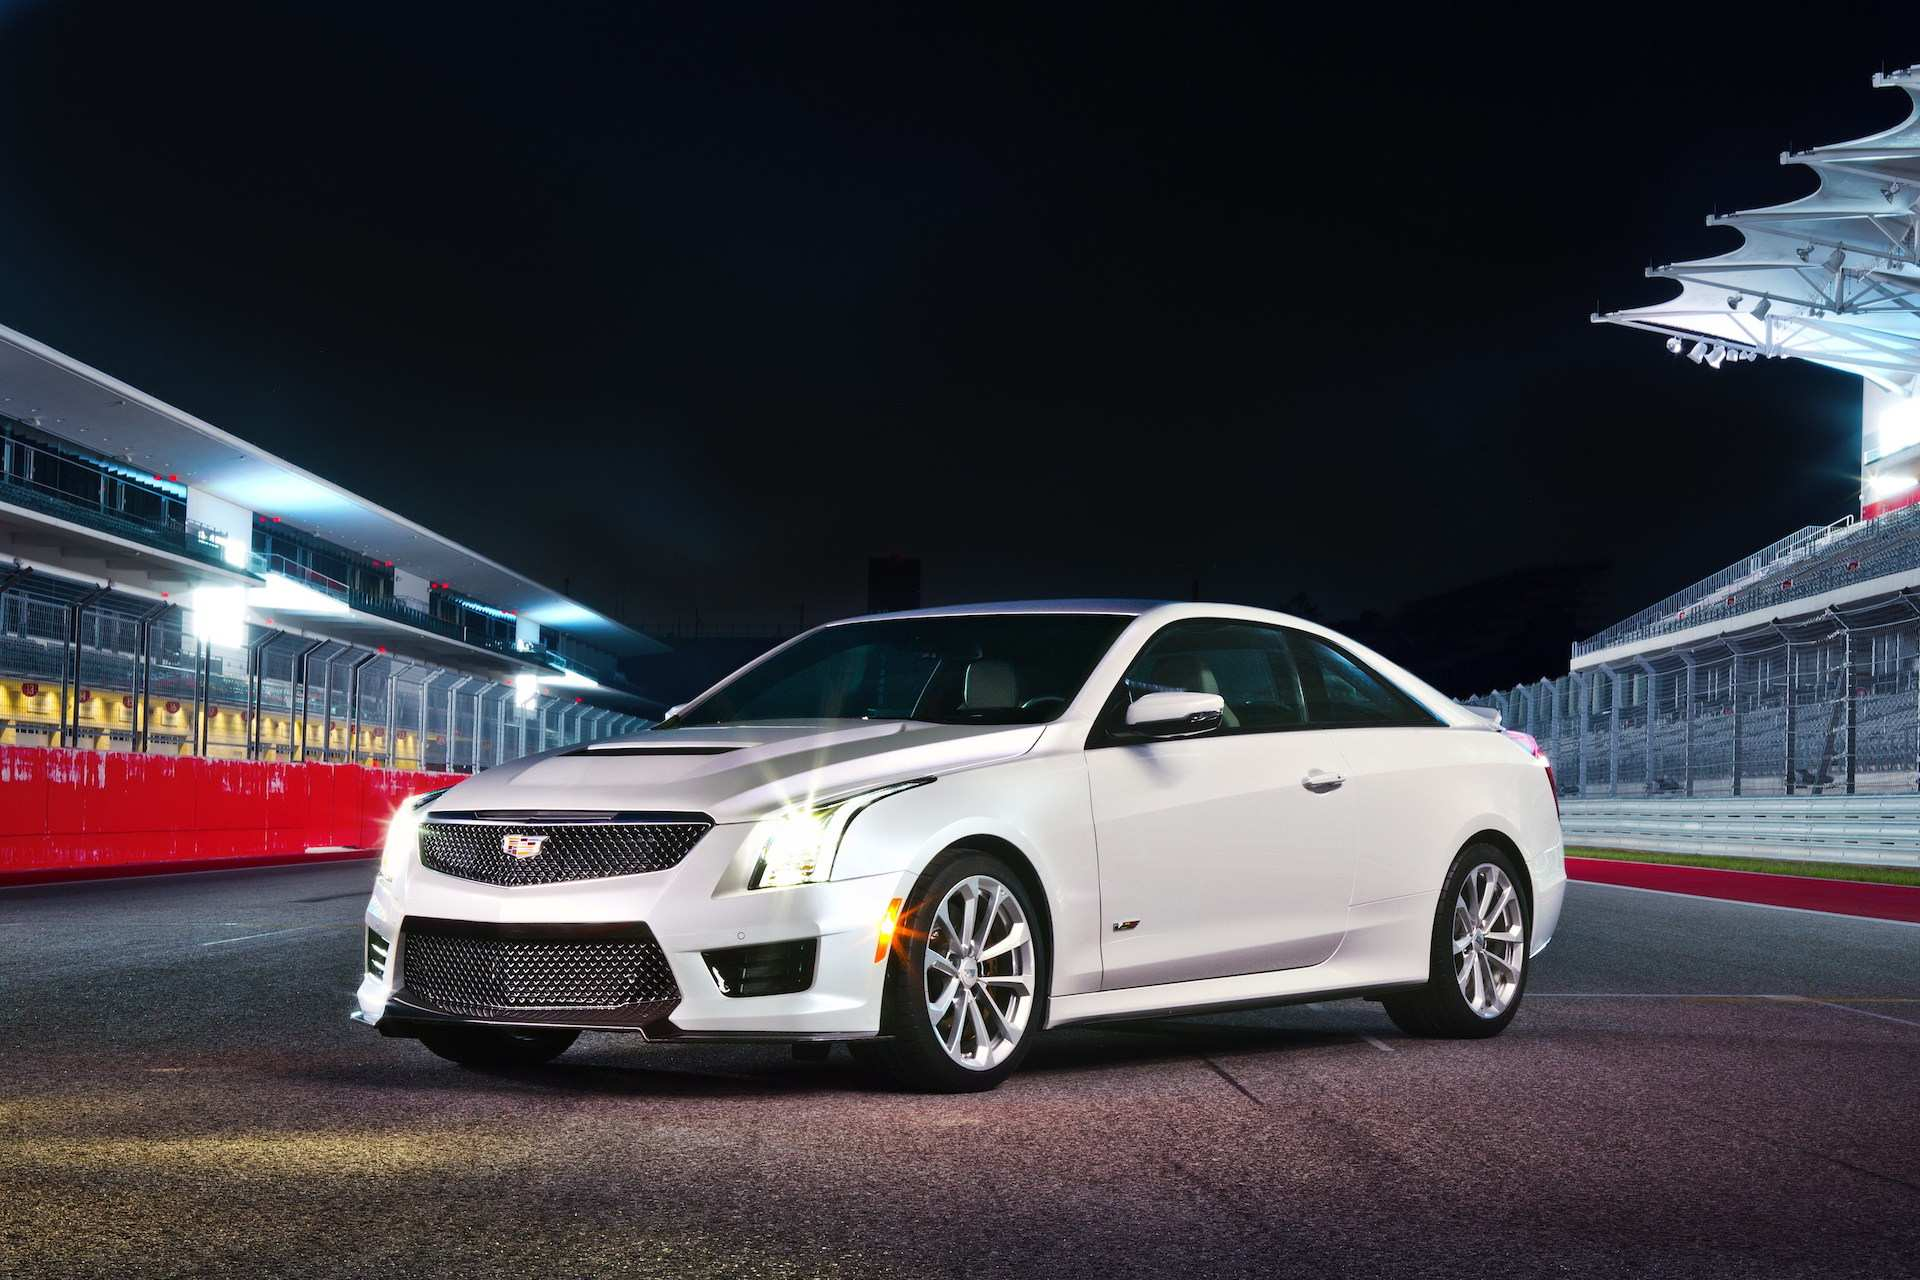 21 Concept of 2019 Cts V Coupe Pictures for 2019 Cts V Coupe